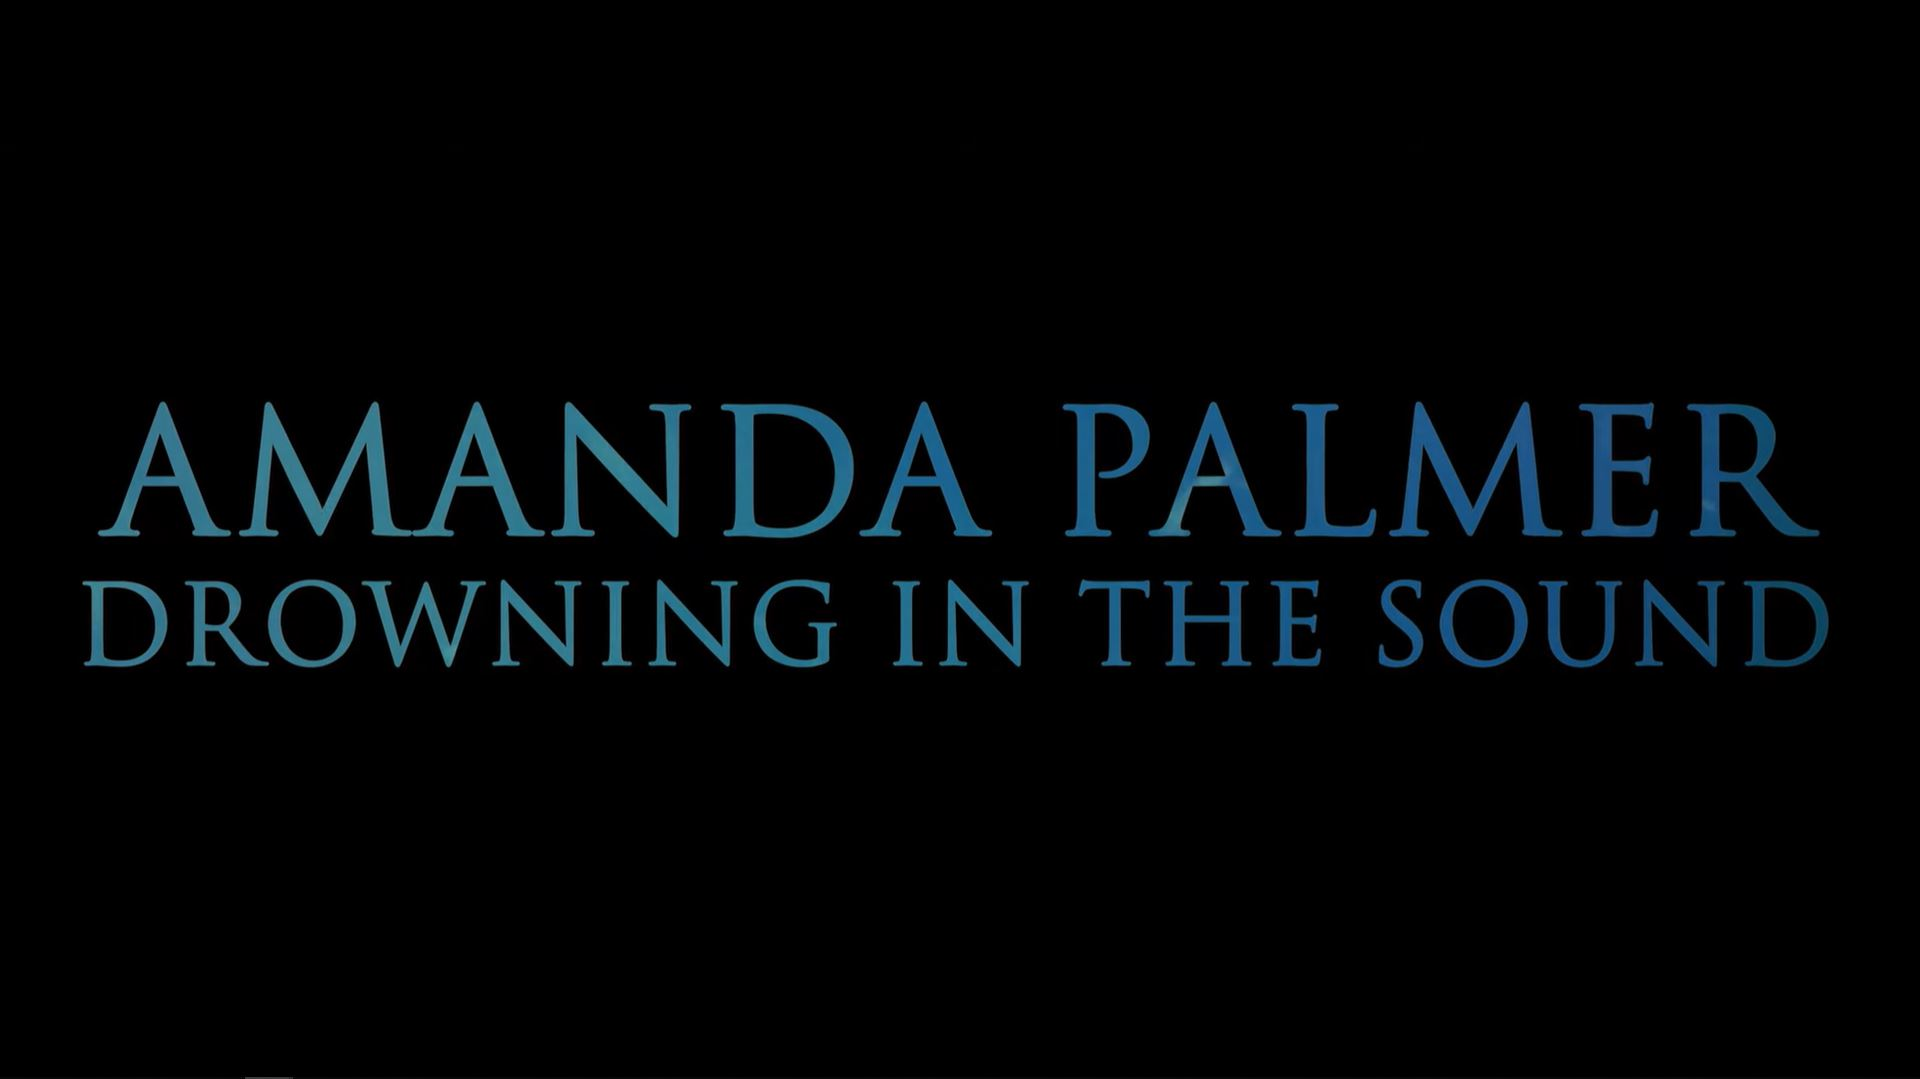 Music Video - Amanda Palmer - Drowning In The Sound